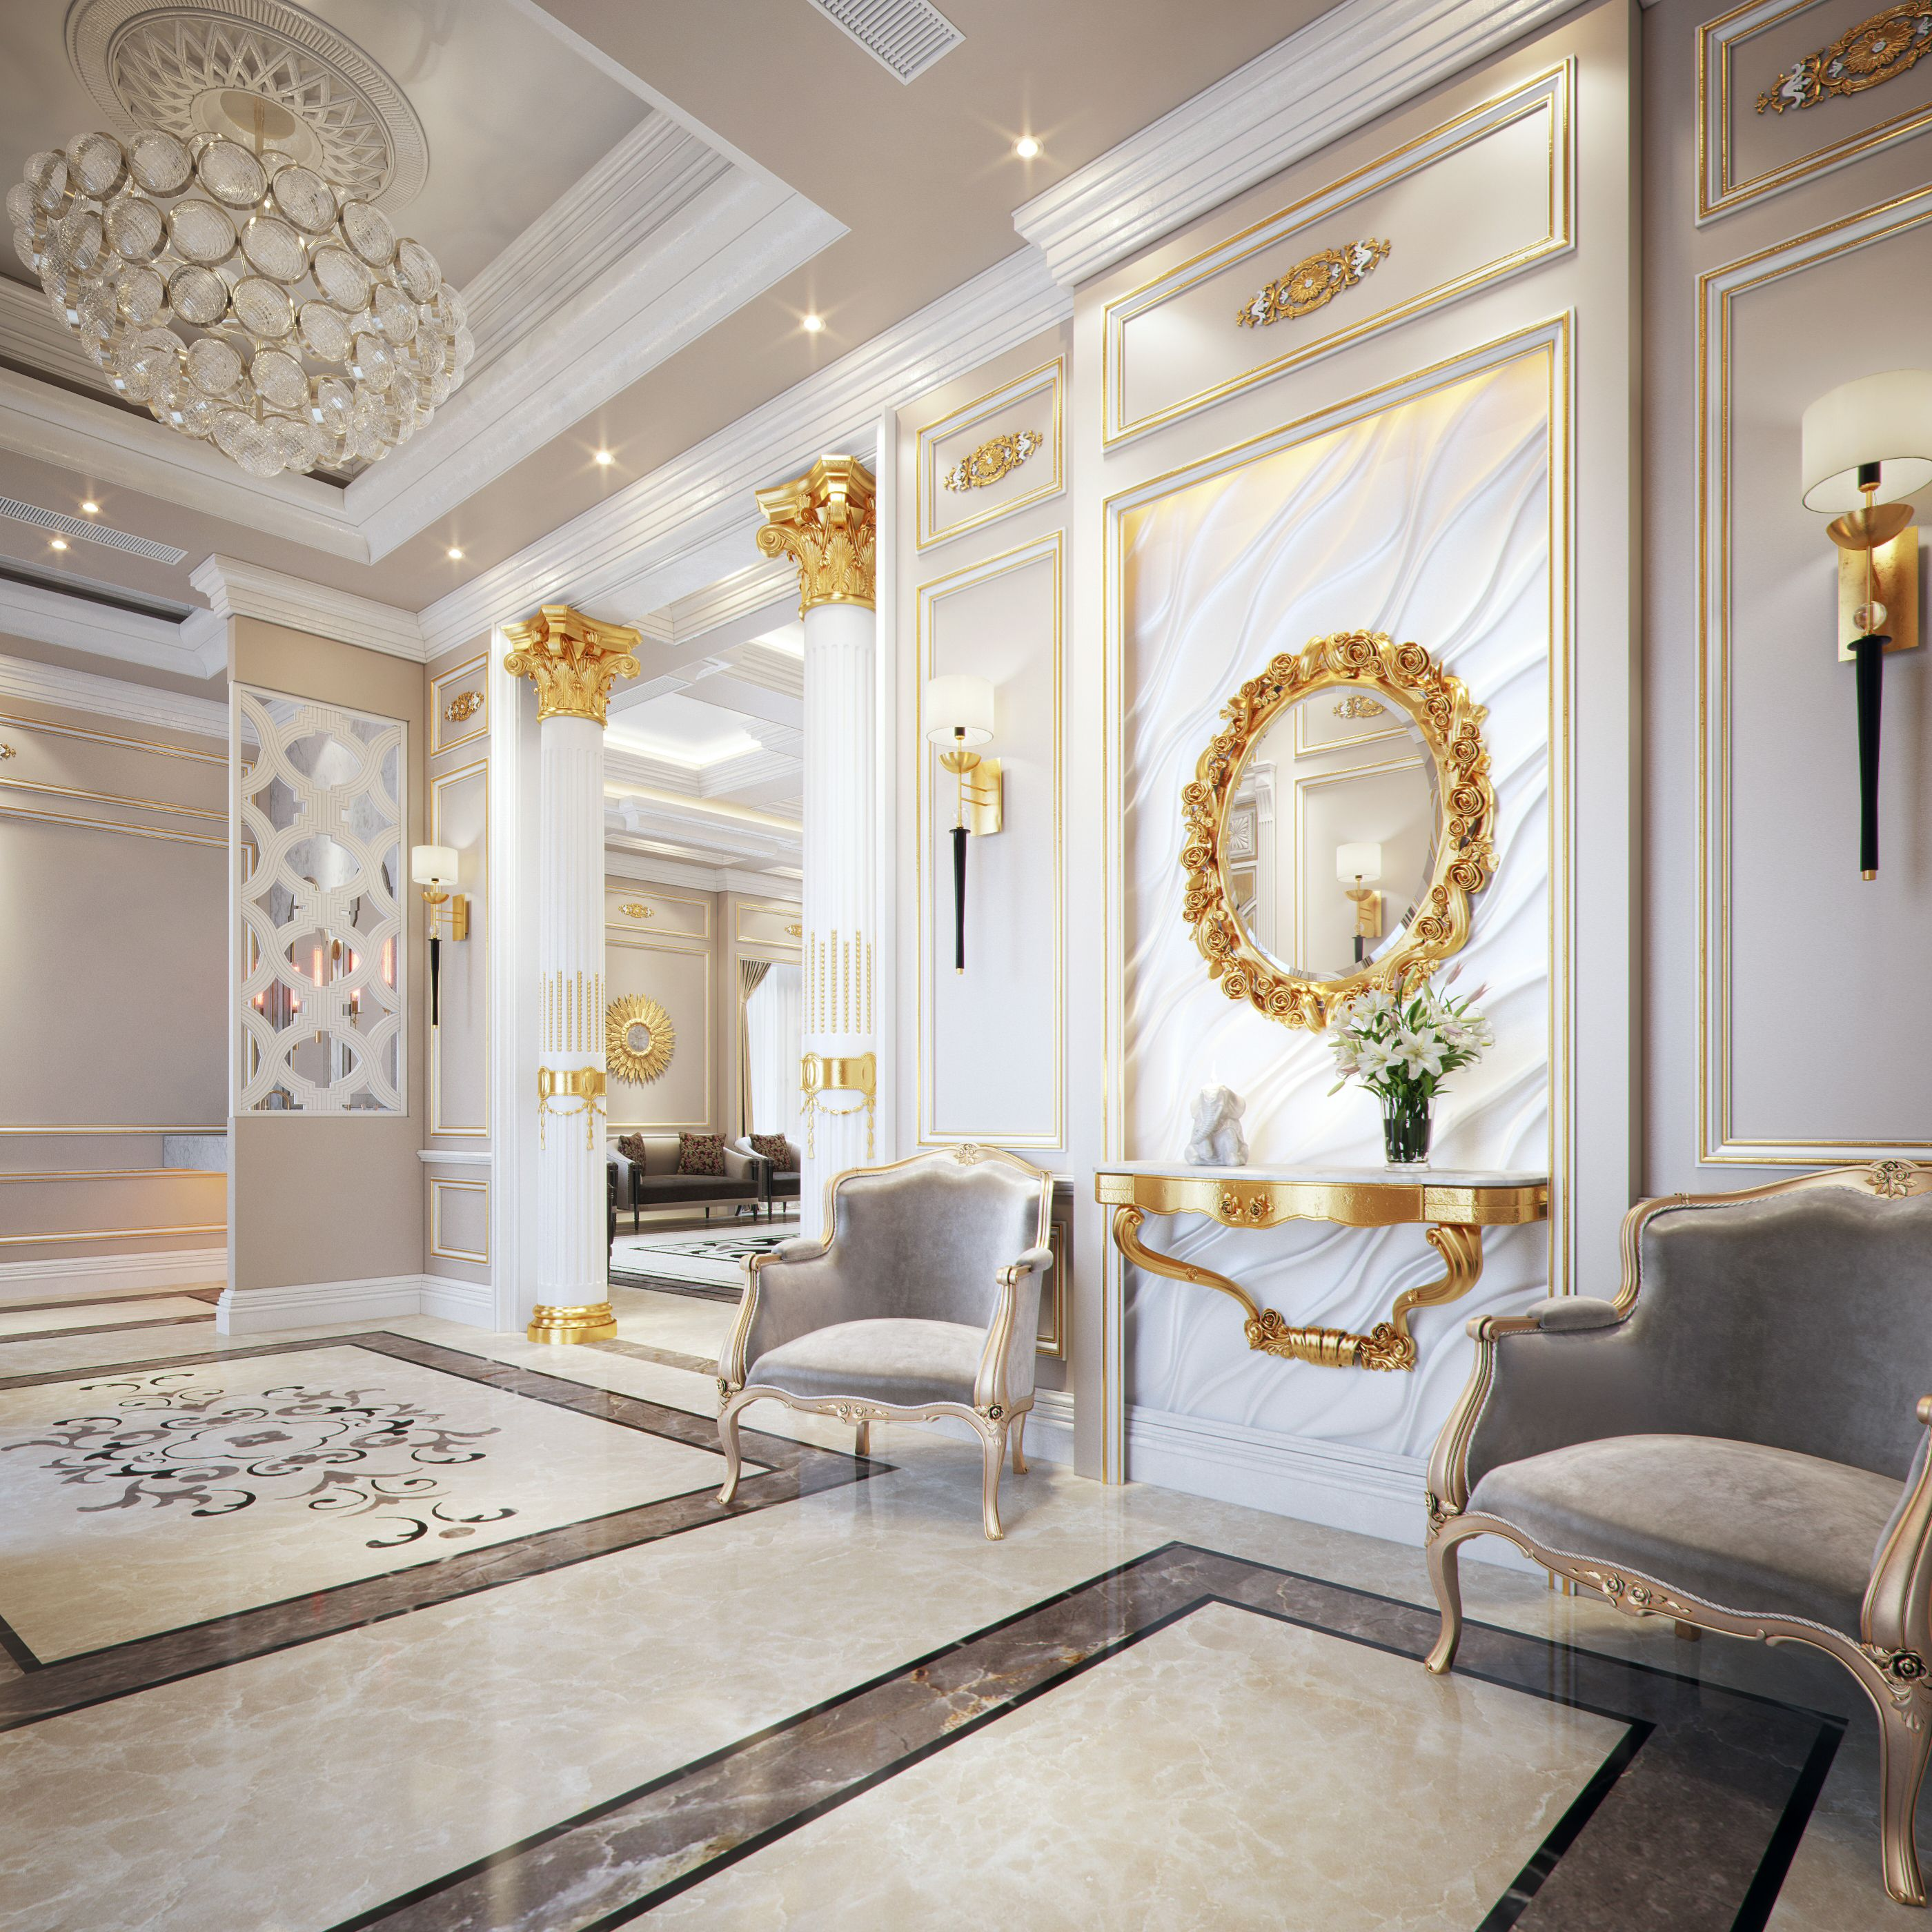 Check Out My Behance Project Classic Style Villa Https Www Behance Net Gallery 4670492 Classic Interior Design Classic Interior Luxury Living Room Design